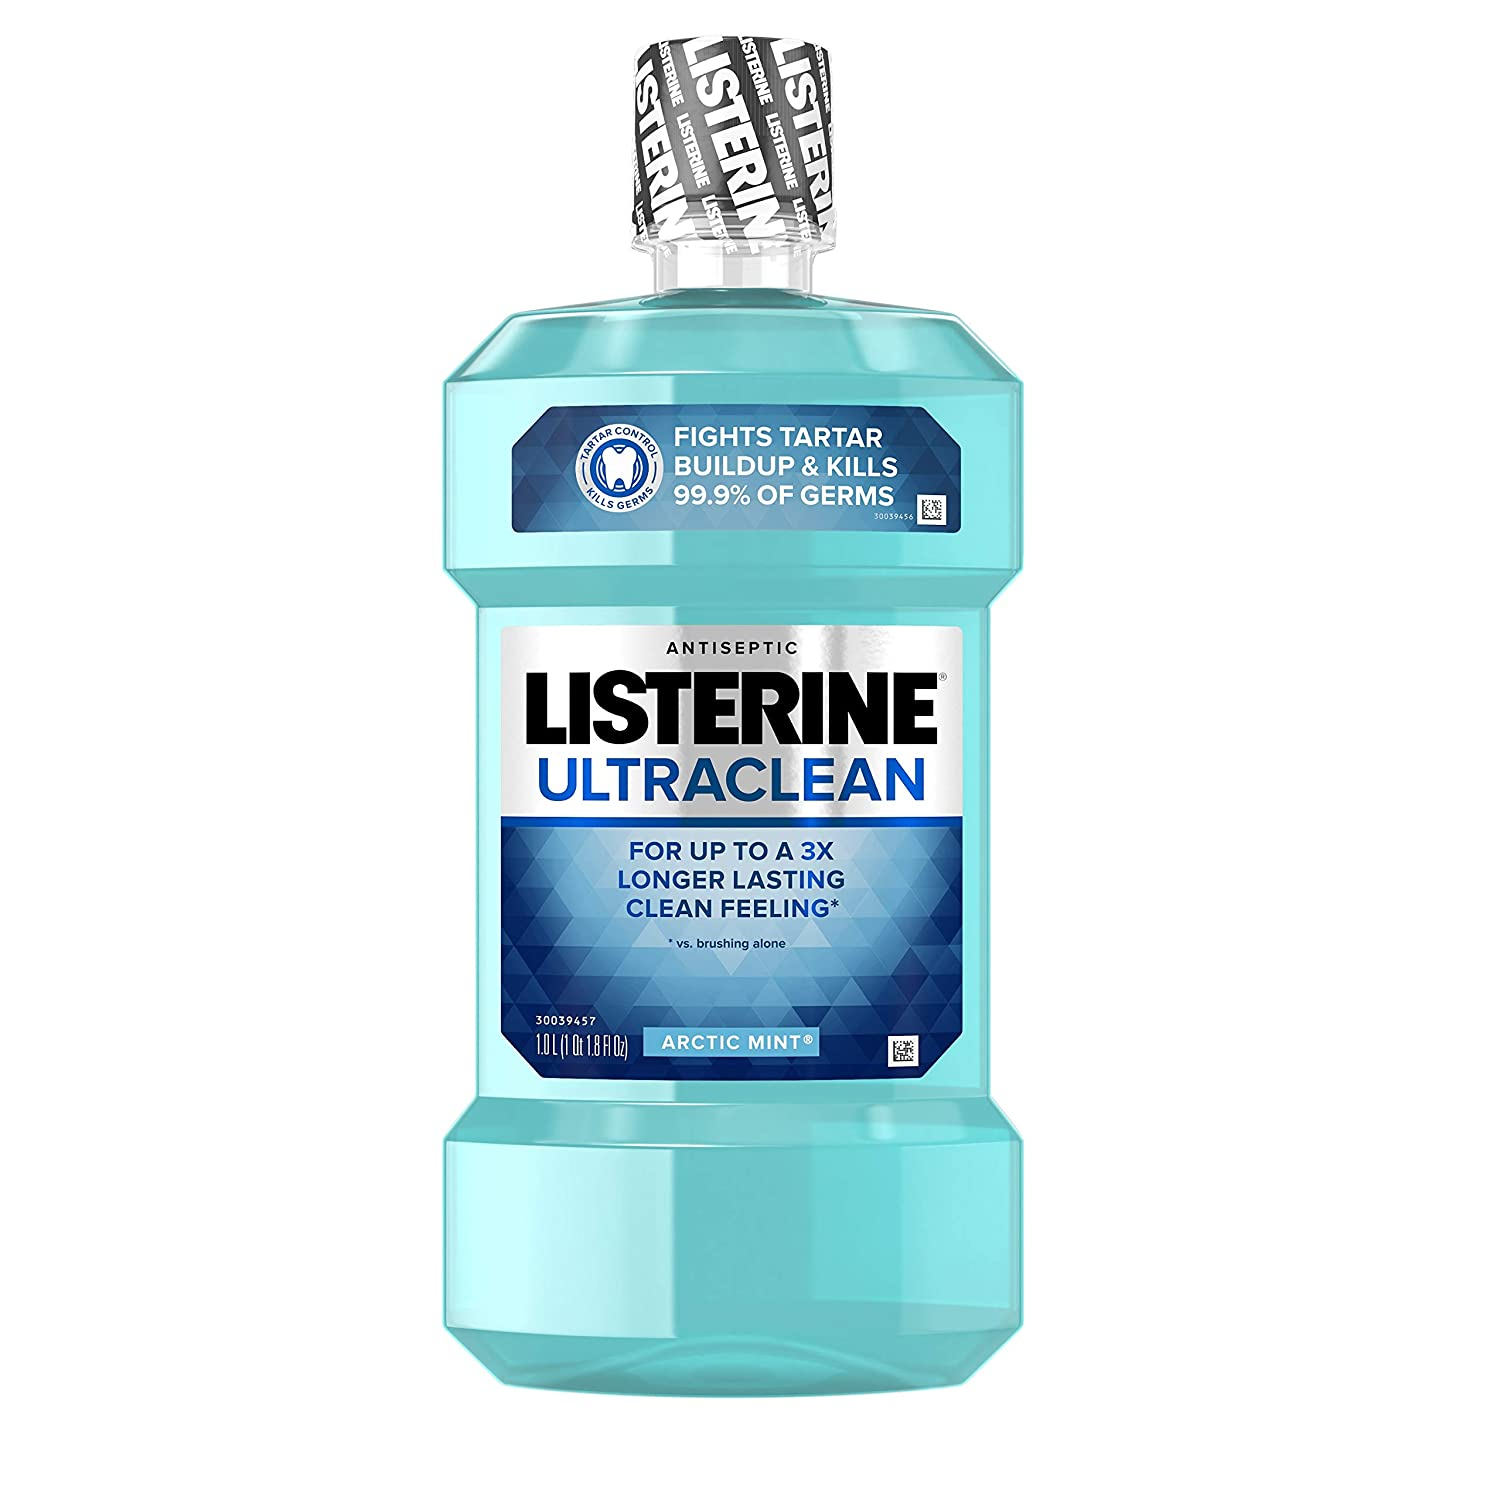 Listerine Ultraclean Oral Care Antiseptic Mouthwash to Help Fight Bad Breath Germs, Gingivitis, Plaque and Tartar, Oral Rinse for Healthy Gums & Fresh Breath, Artic Mist Flavor, 1 L : Beauty